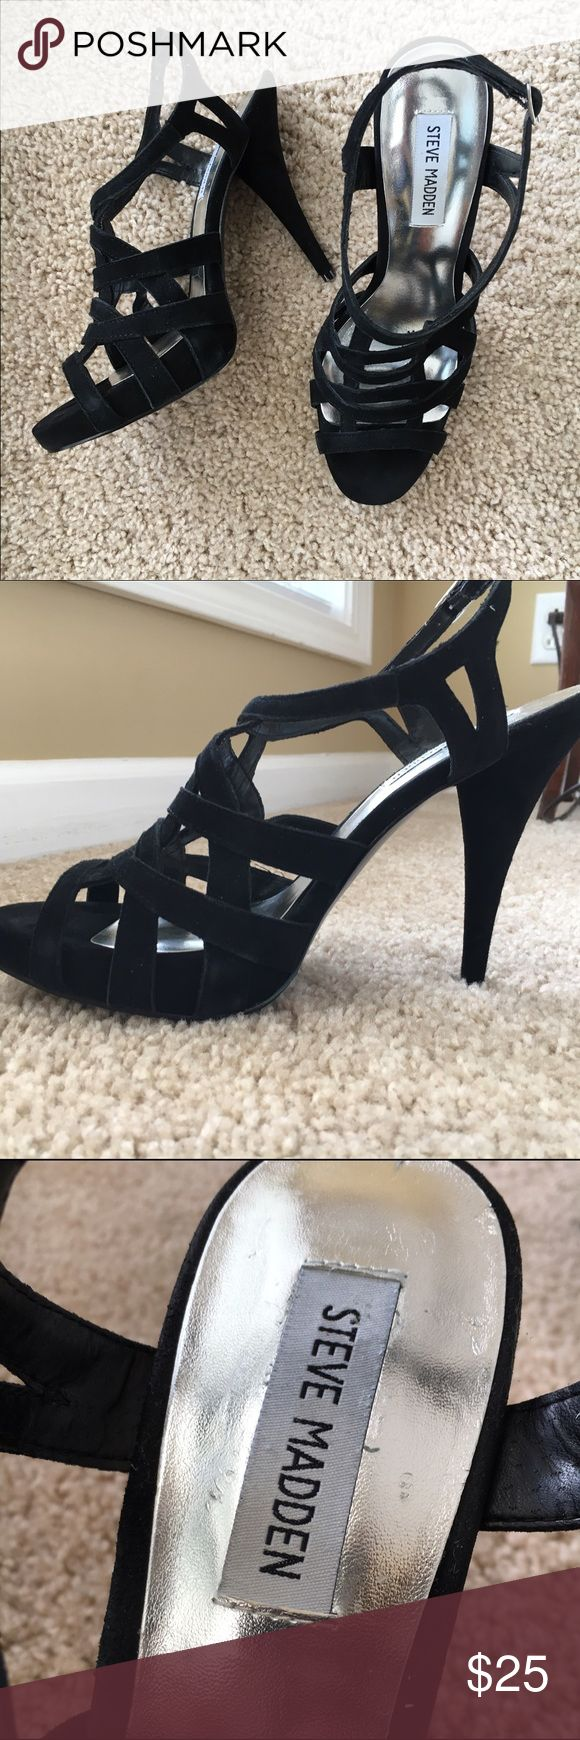 "Steve Madden Suede Heels 👀!! Sexy. 5"" Heels with approx 3/4"" platform. They have never been worn outdoors. I saw that Tyra Banks cross hatched the bottoms of hers for traction so I did too. 😜 One of the shoes is just a tiny bit sticky due to sticker removal (pic). Steve Madden Shoes Heels"